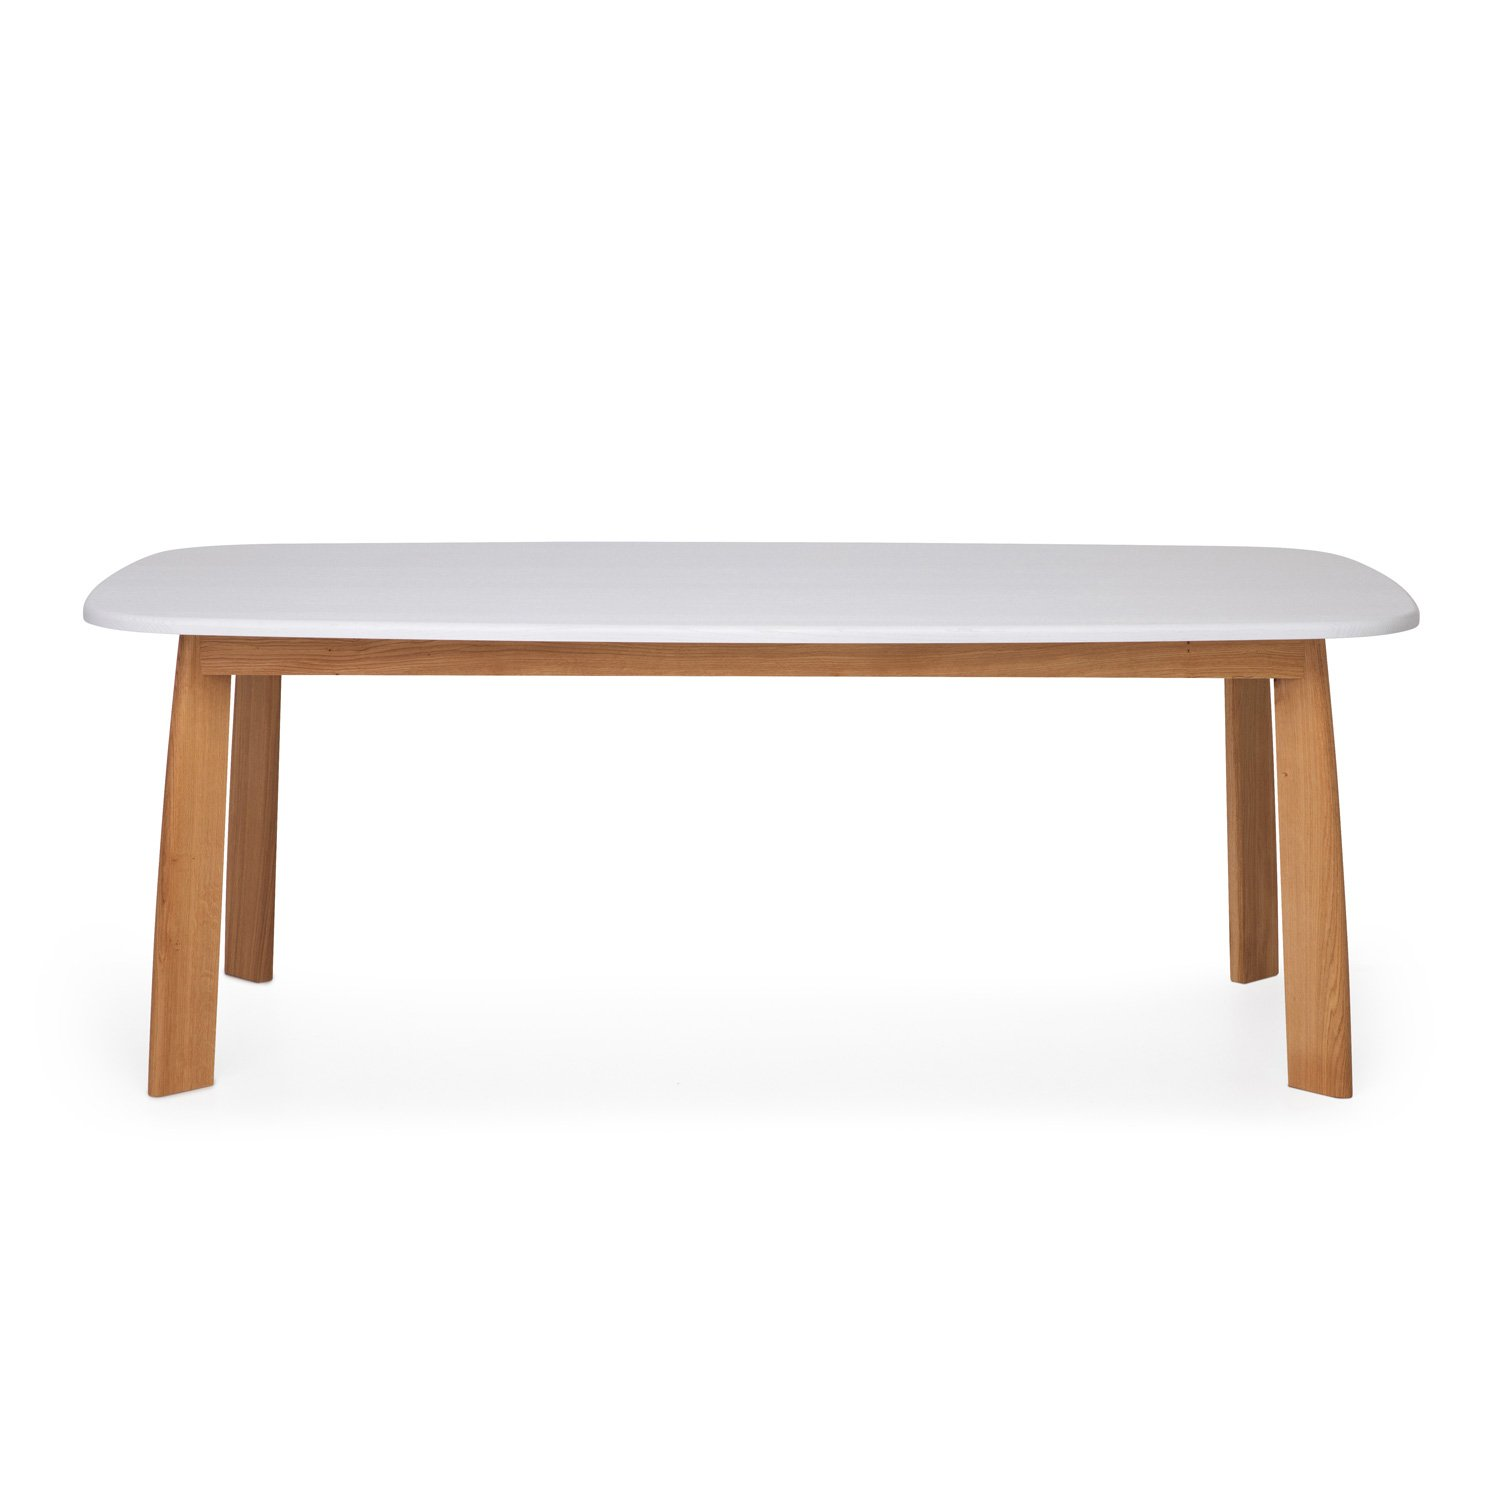 Delightful Quodes Willenz Stone Table White Top